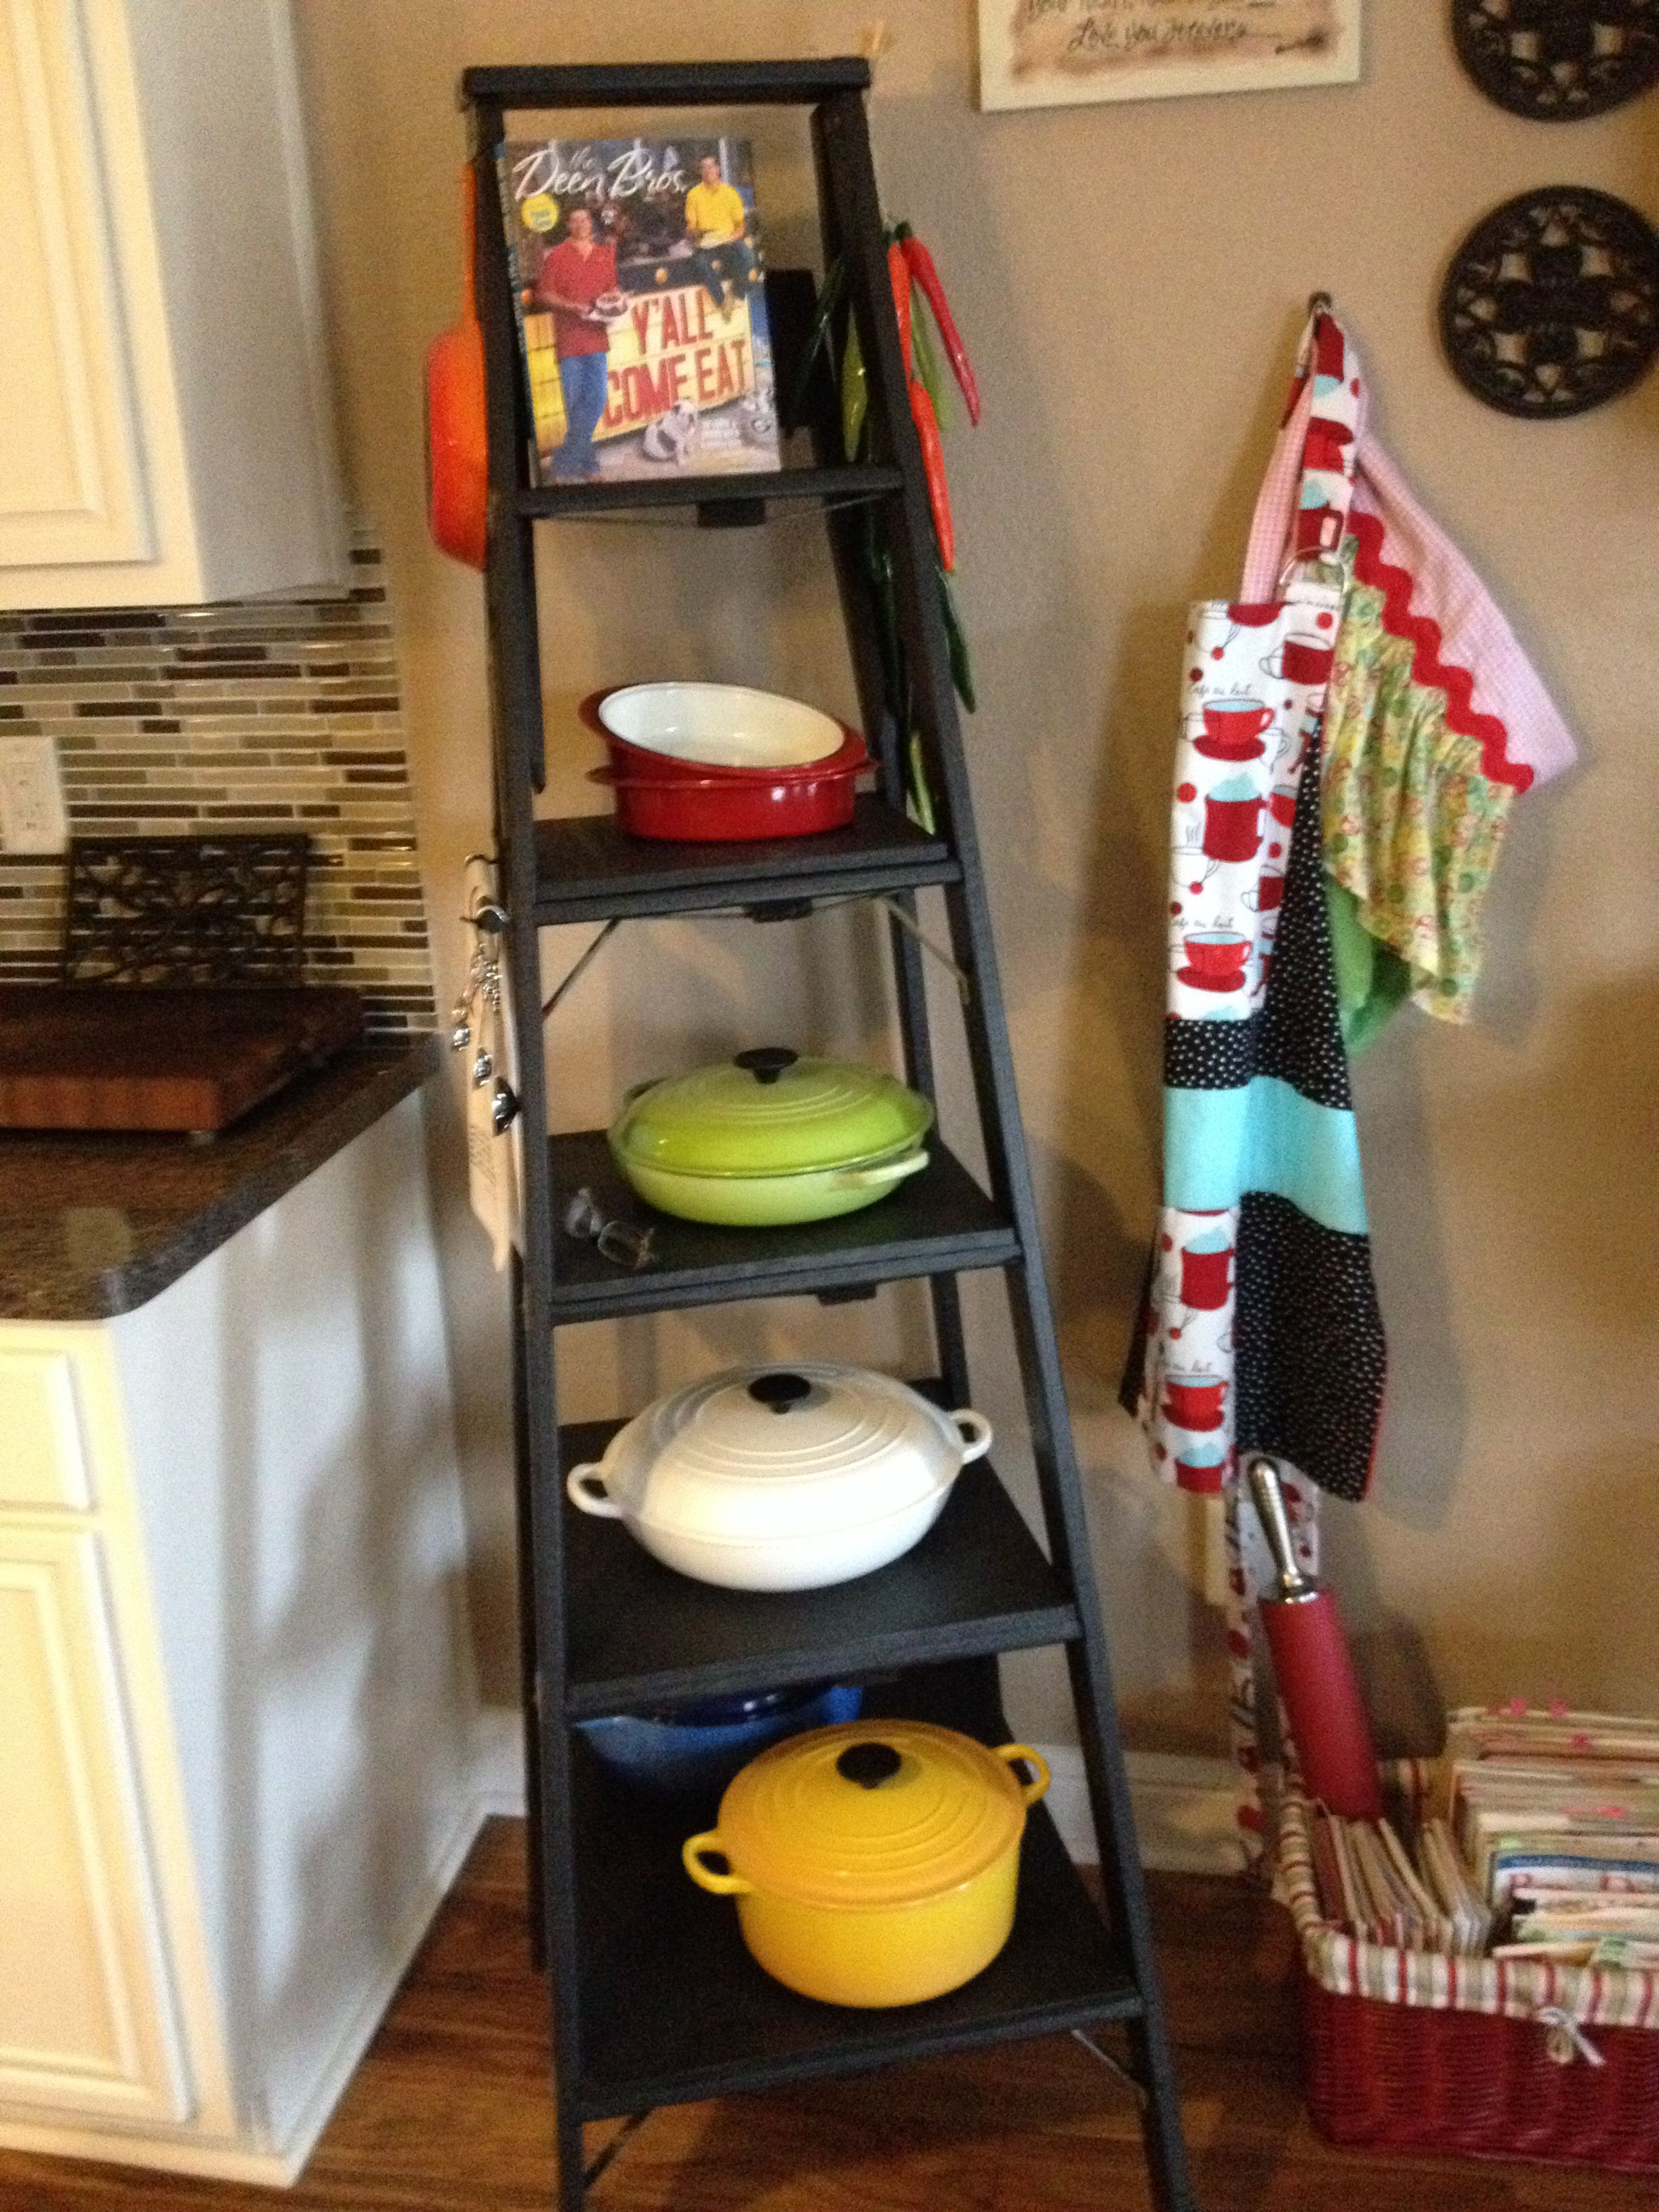 Le Creuset Pans Displayed On Repurposed Latter Great Storage Solution Easy Access